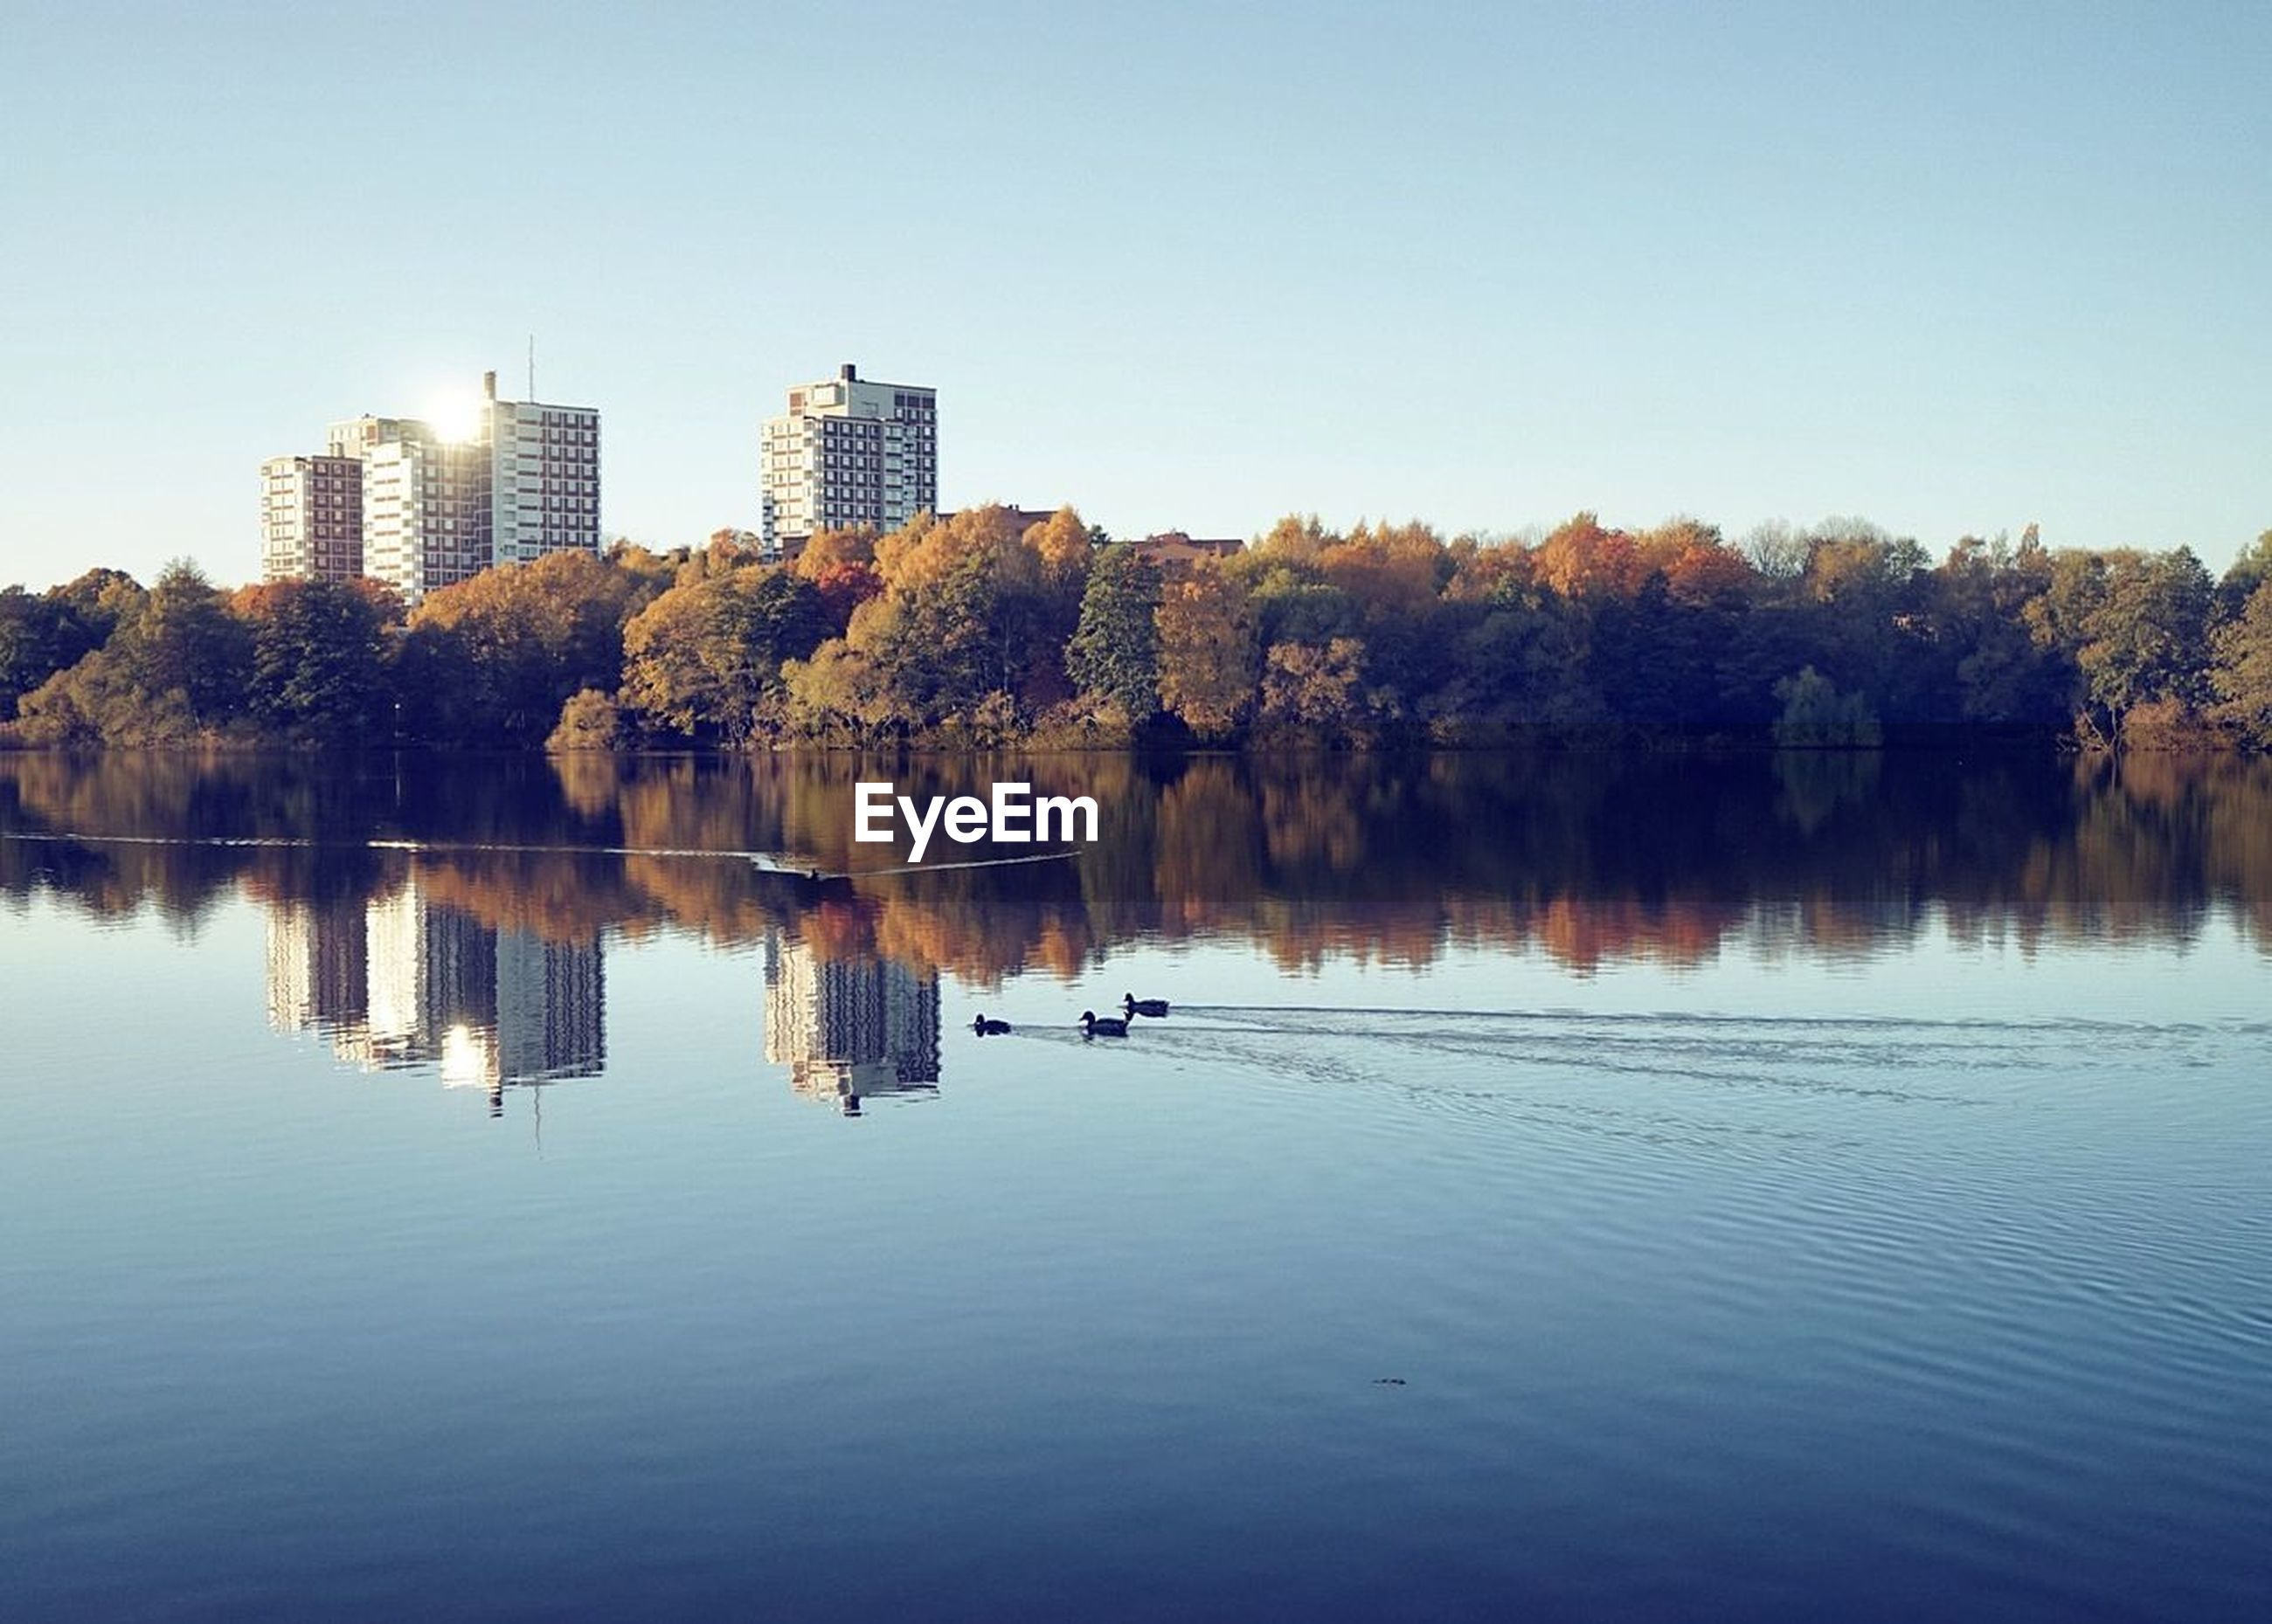 reflection, tree, architecture, lake, skyscraper, waterfront, building exterior, water, nature, clear sky, outdoors, built structure, no people, tranquility, beauty in nature, scenics, day, autumn, sky, city, urban skyline, cityscape